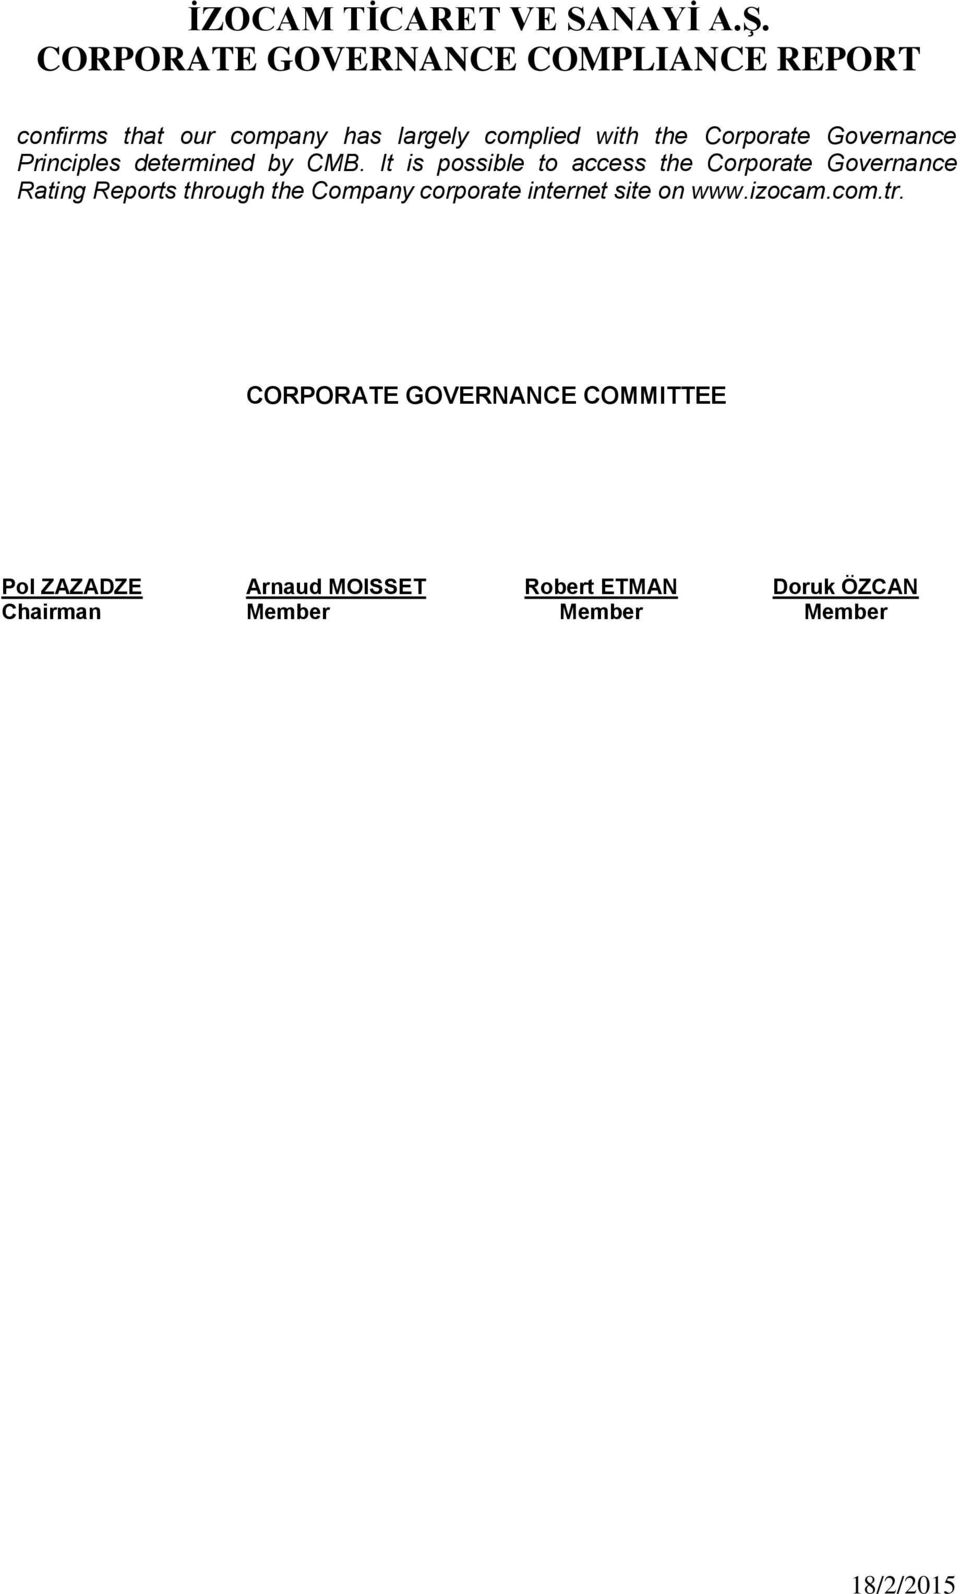 It is possible to access the Corporate Governance Rating Reports through the Company